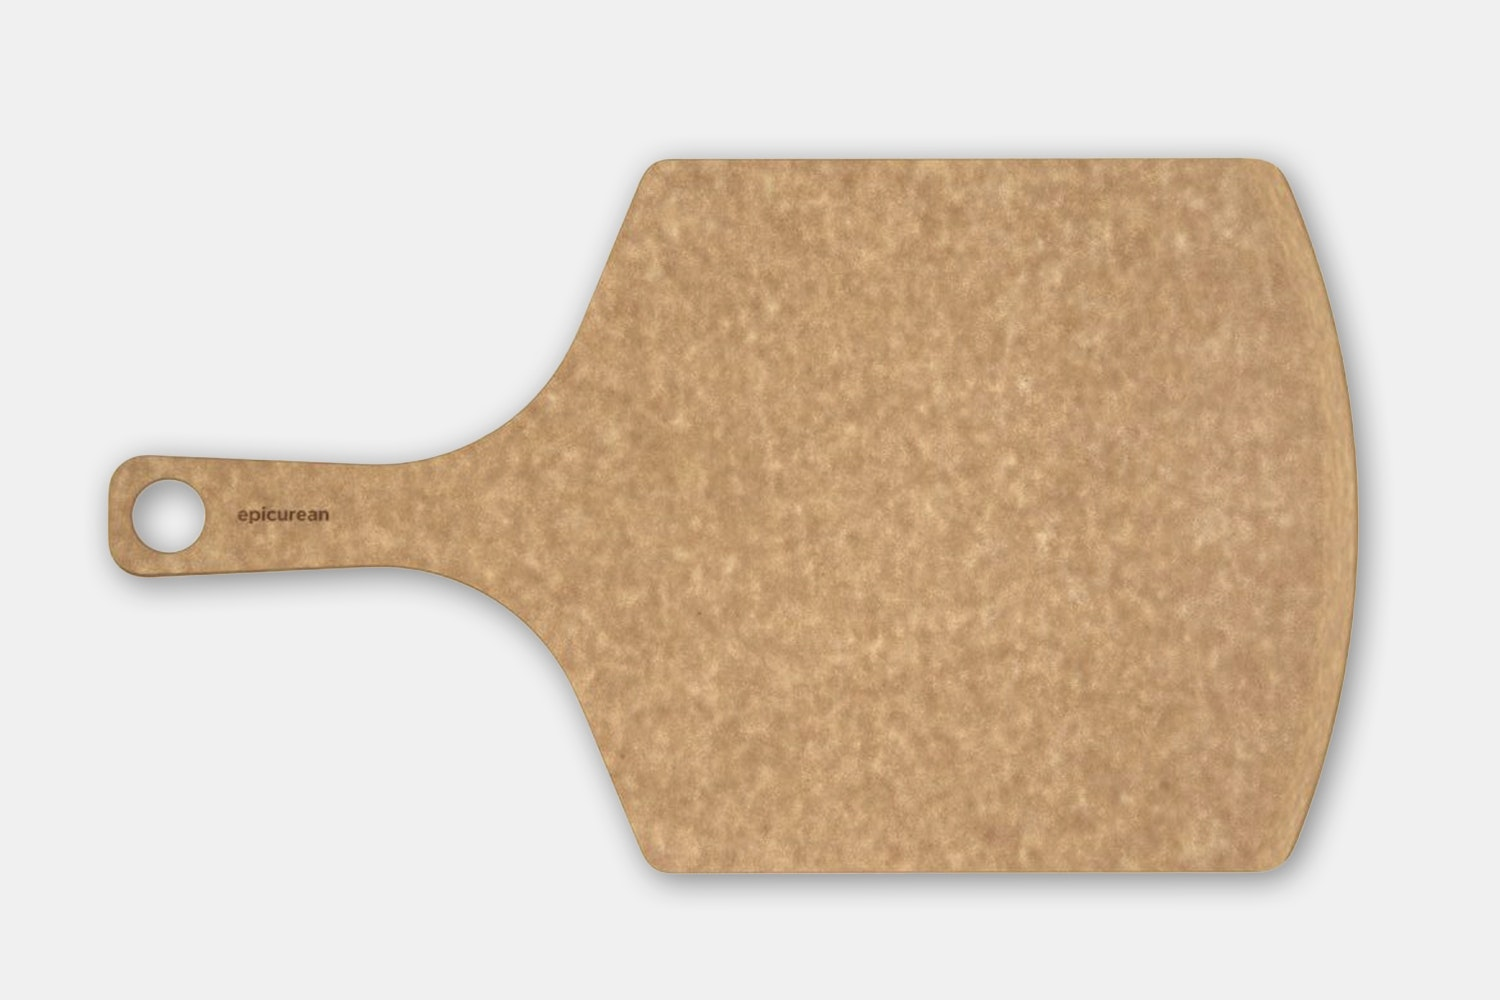 Epicurean Pizza Peel